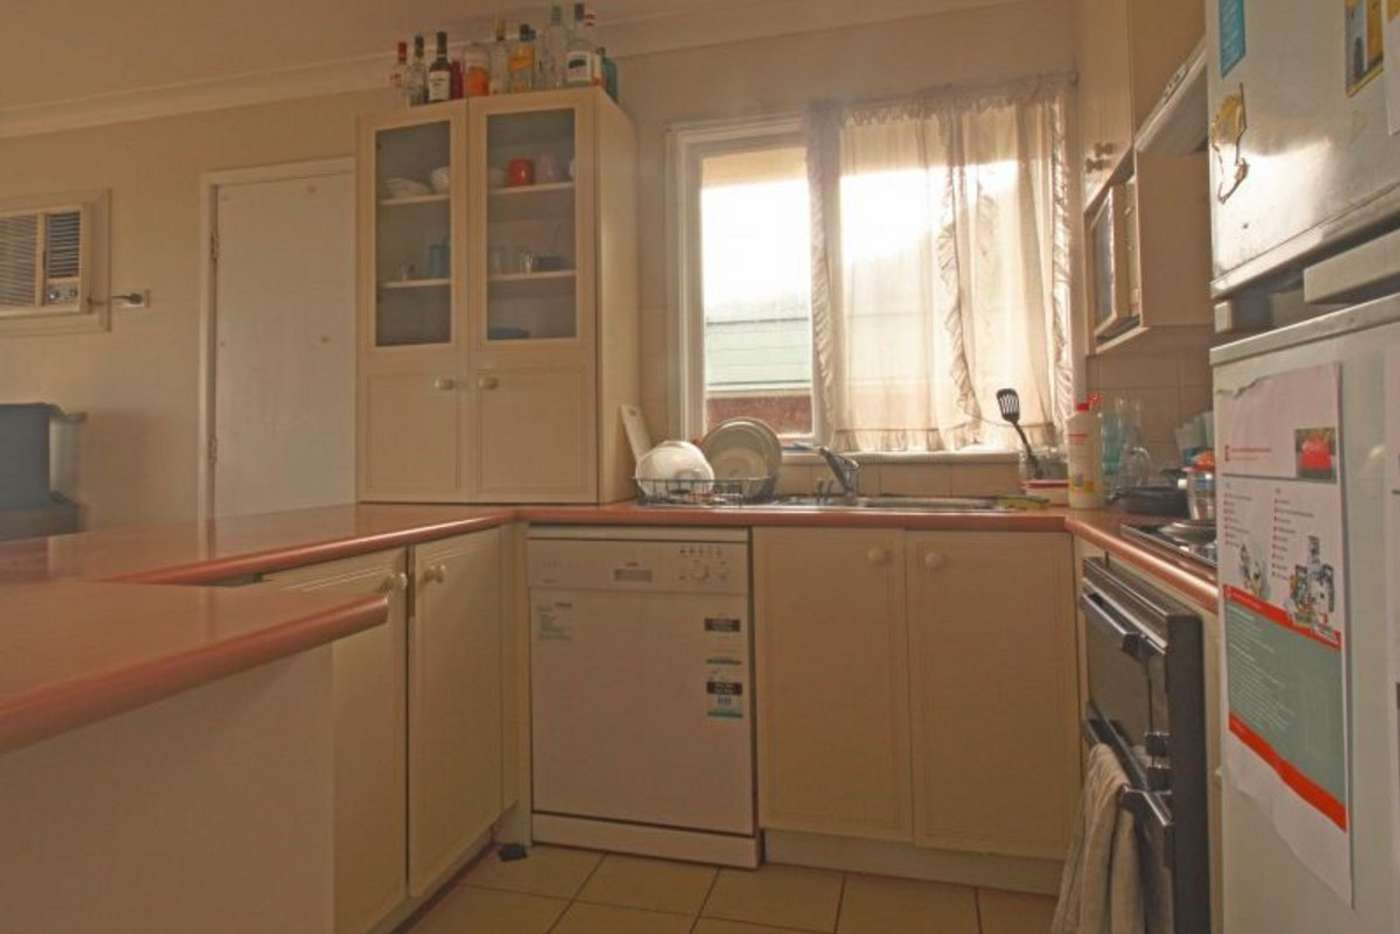 Main view of Homely house listing, 4/8 Binda Street, Keiraville NSW 2500